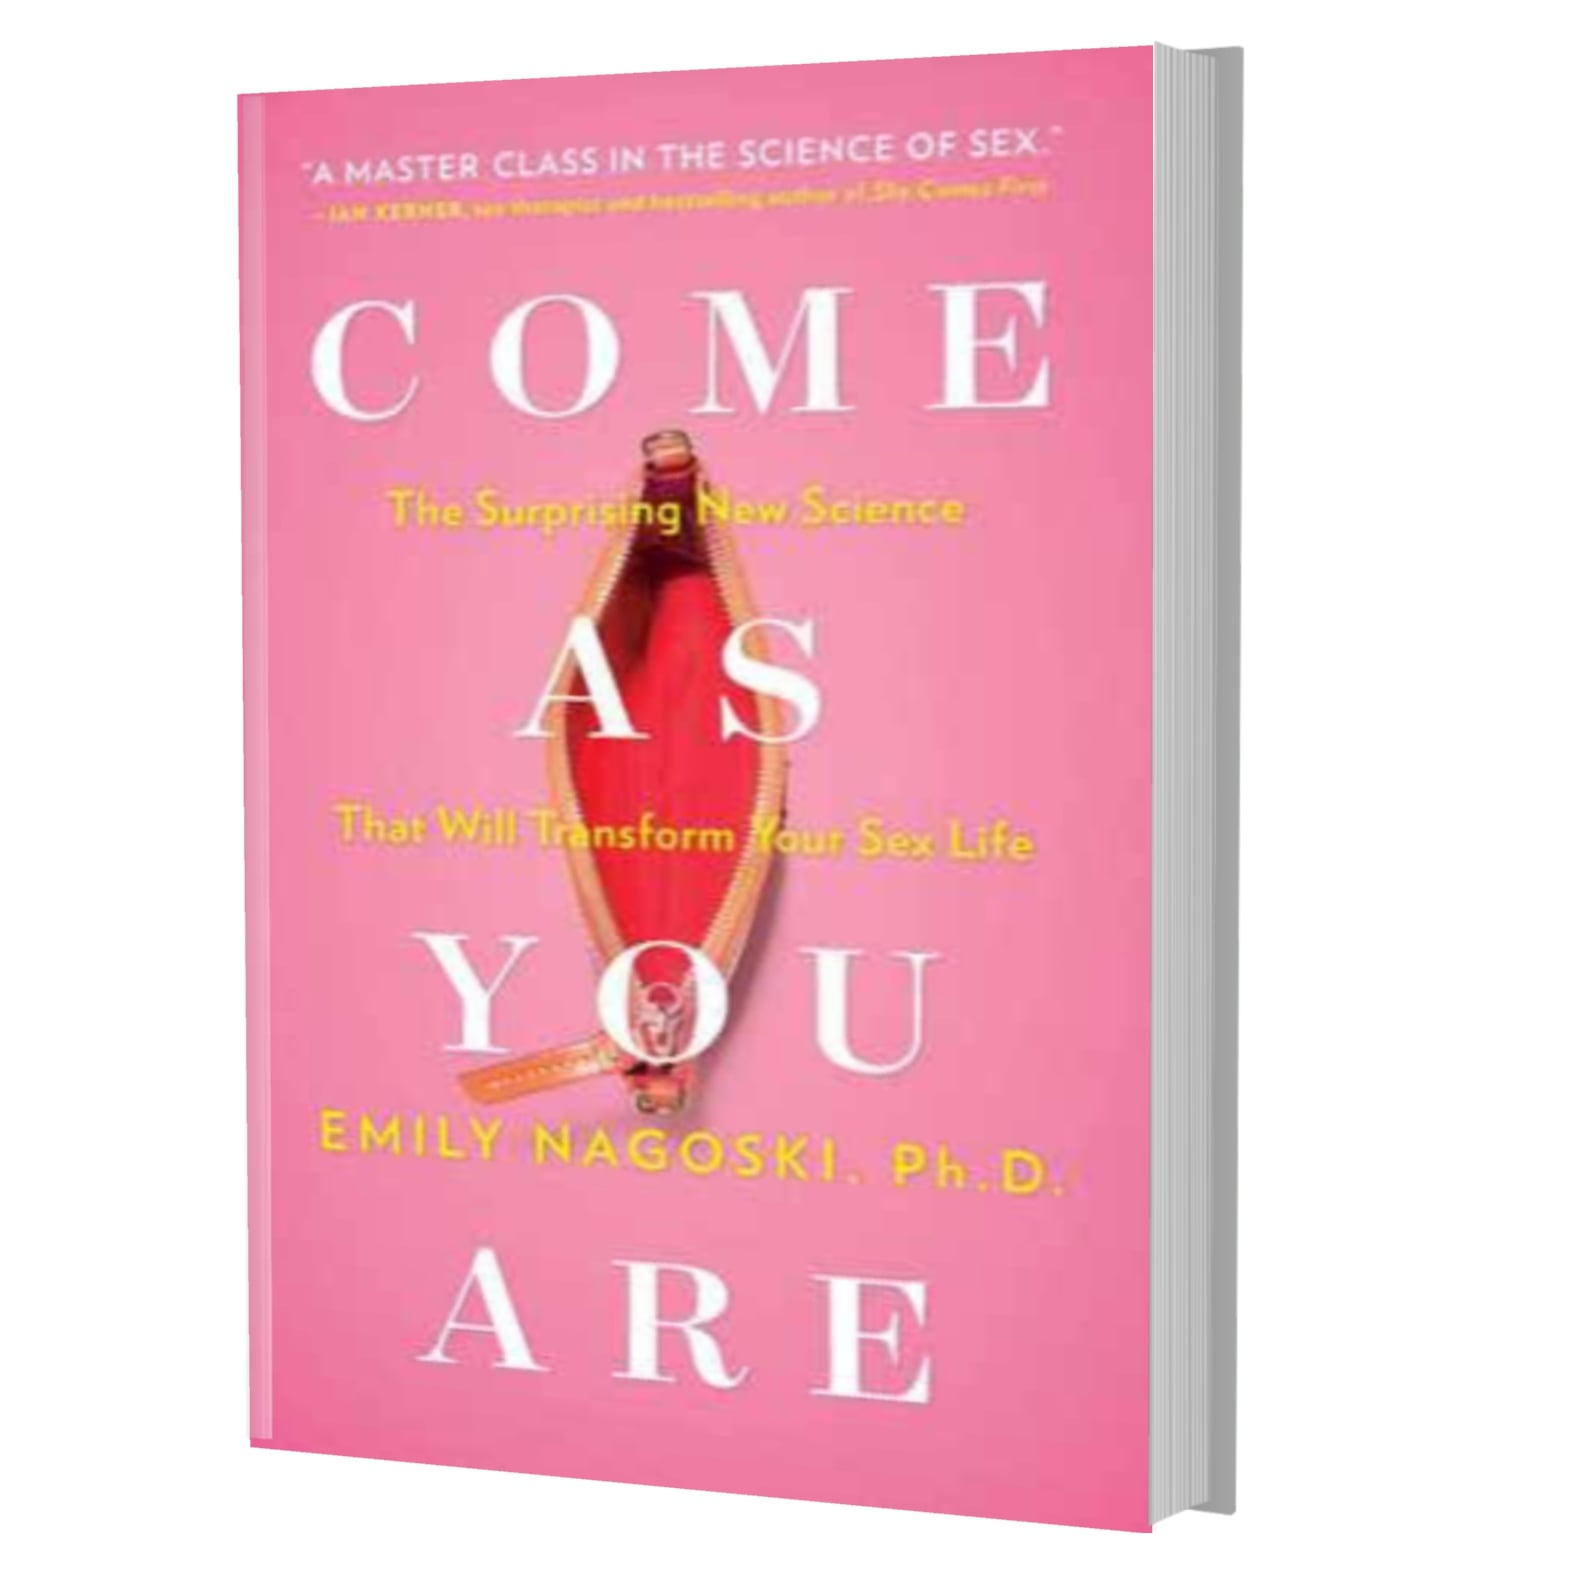 Come as you are: the surprising new science that will transform your sex life- Emily Nagoski